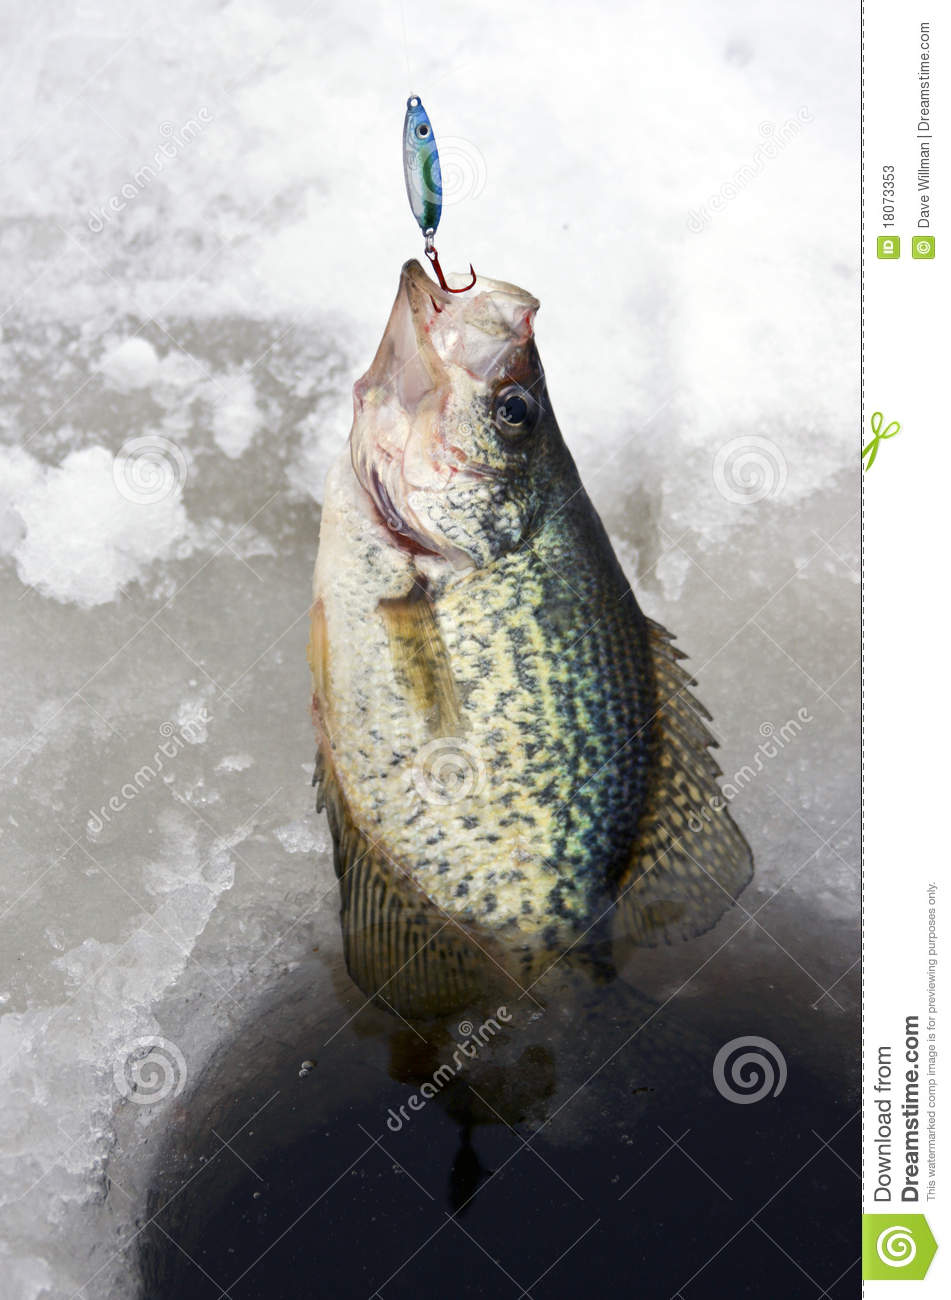 Ice fishing crappie stock image image of catch fishing for Crappie ice fishing